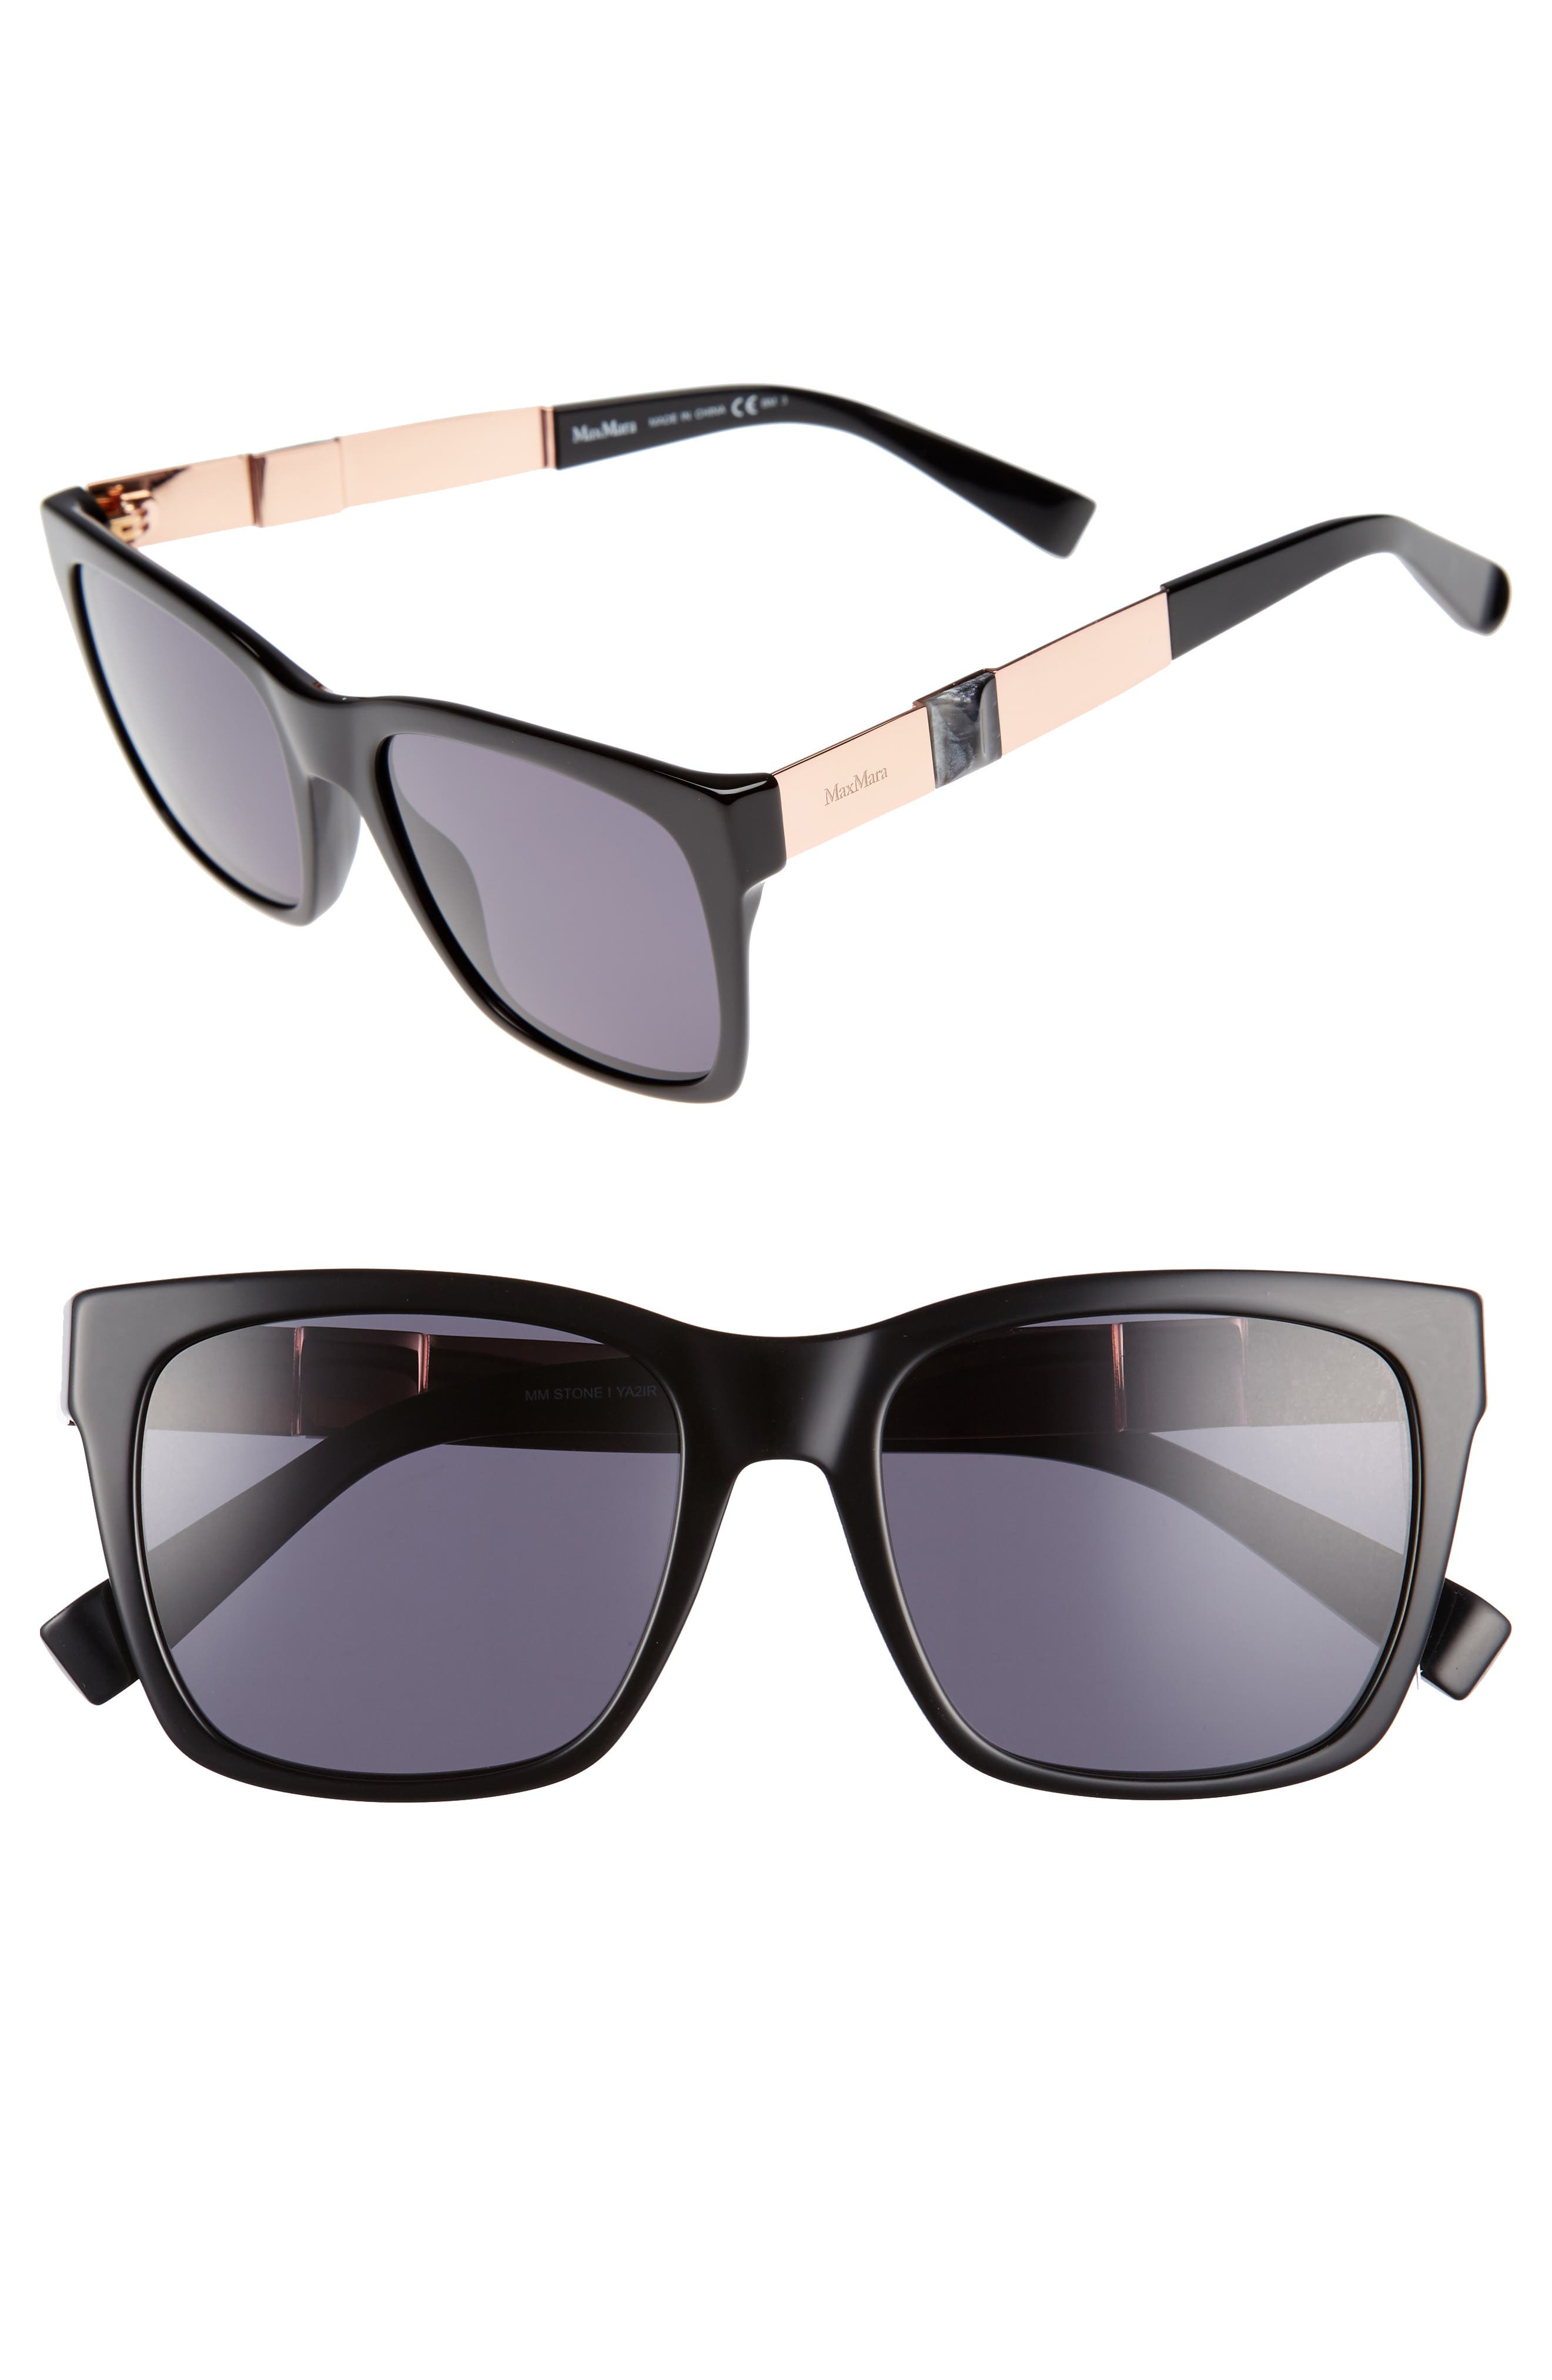 Stone 54mm Gradient Sunglasses,                         Main,                         color, 001